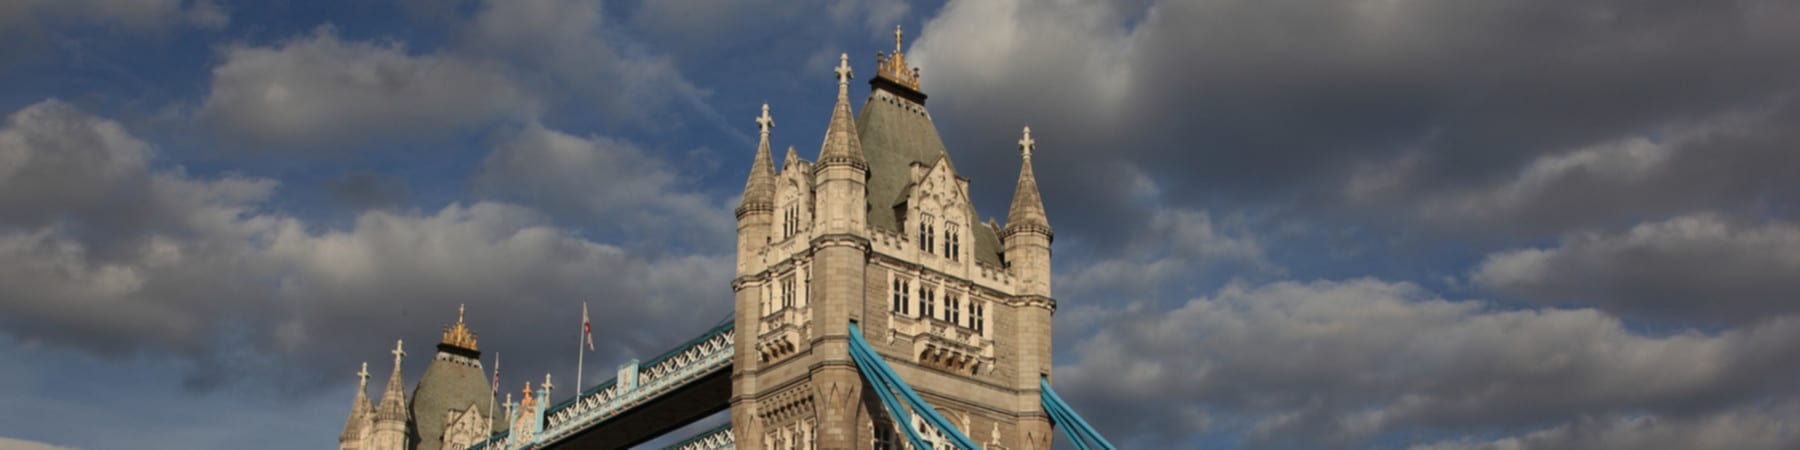 Top Places You Should See On Your First Visit To London